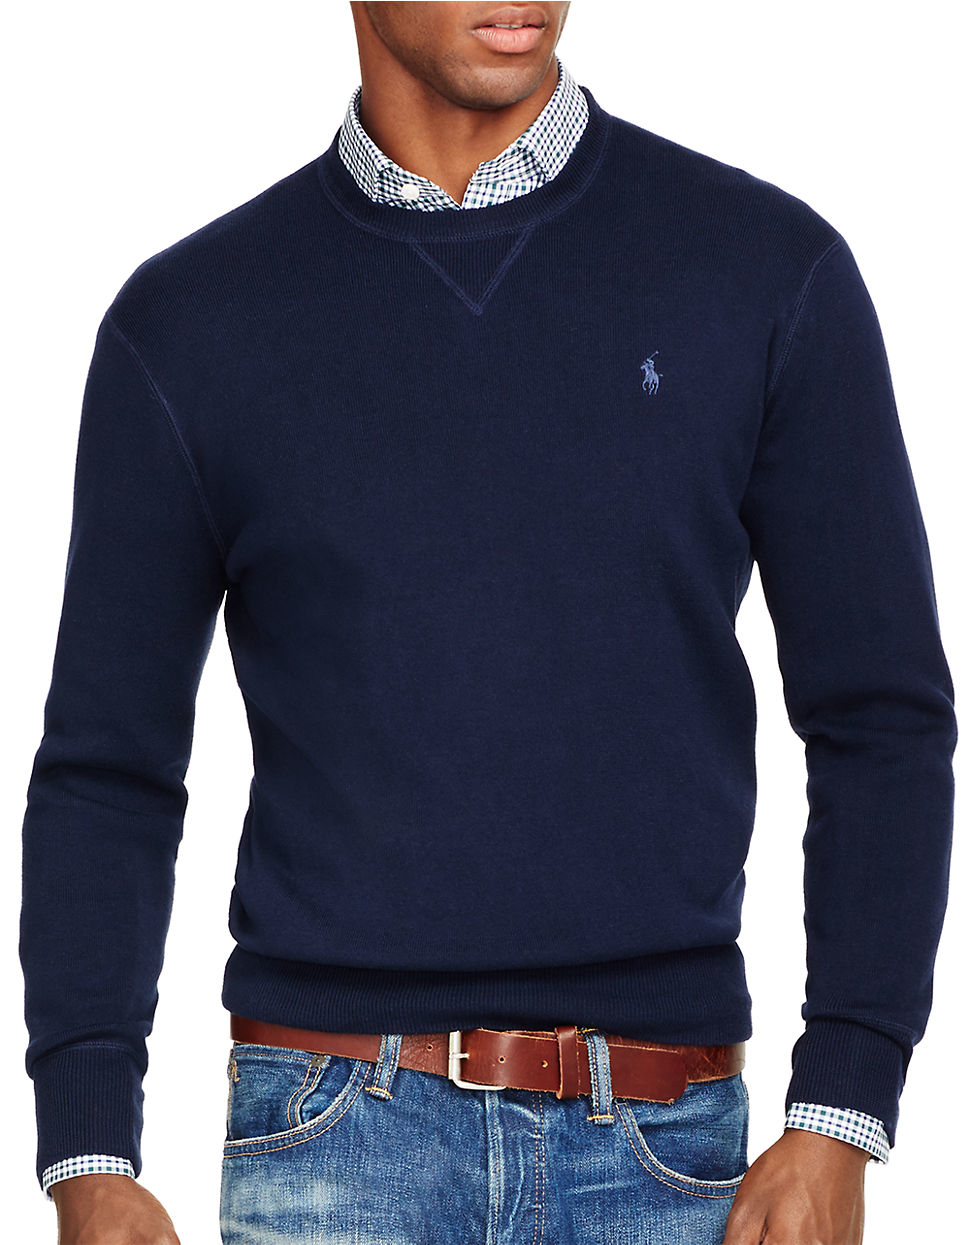 polo ralph lauren crewneck sweatshirt in blue for men lyst. Black Bedroom Furniture Sets. Home Design Ideas